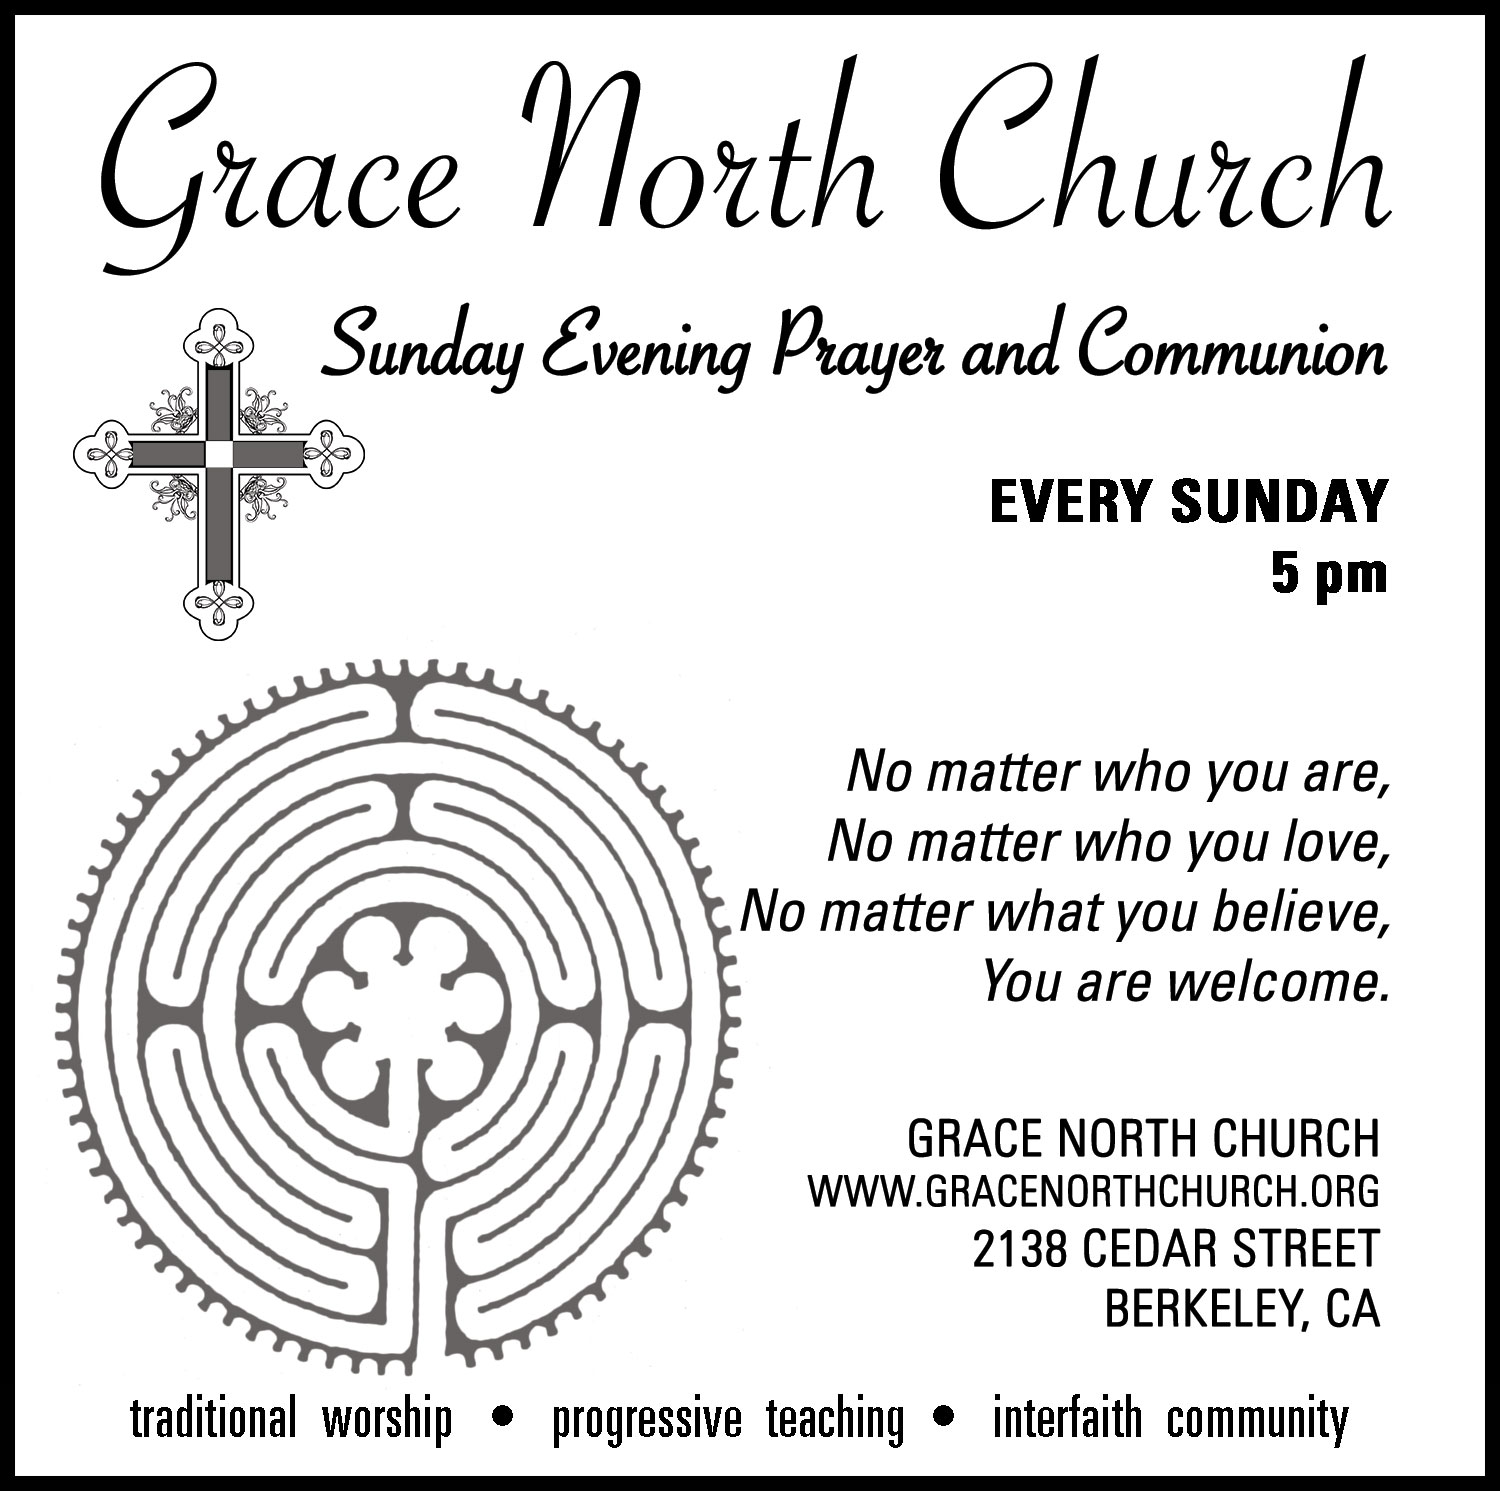 Sunday Evening Prayer and Communion at Grace North Church